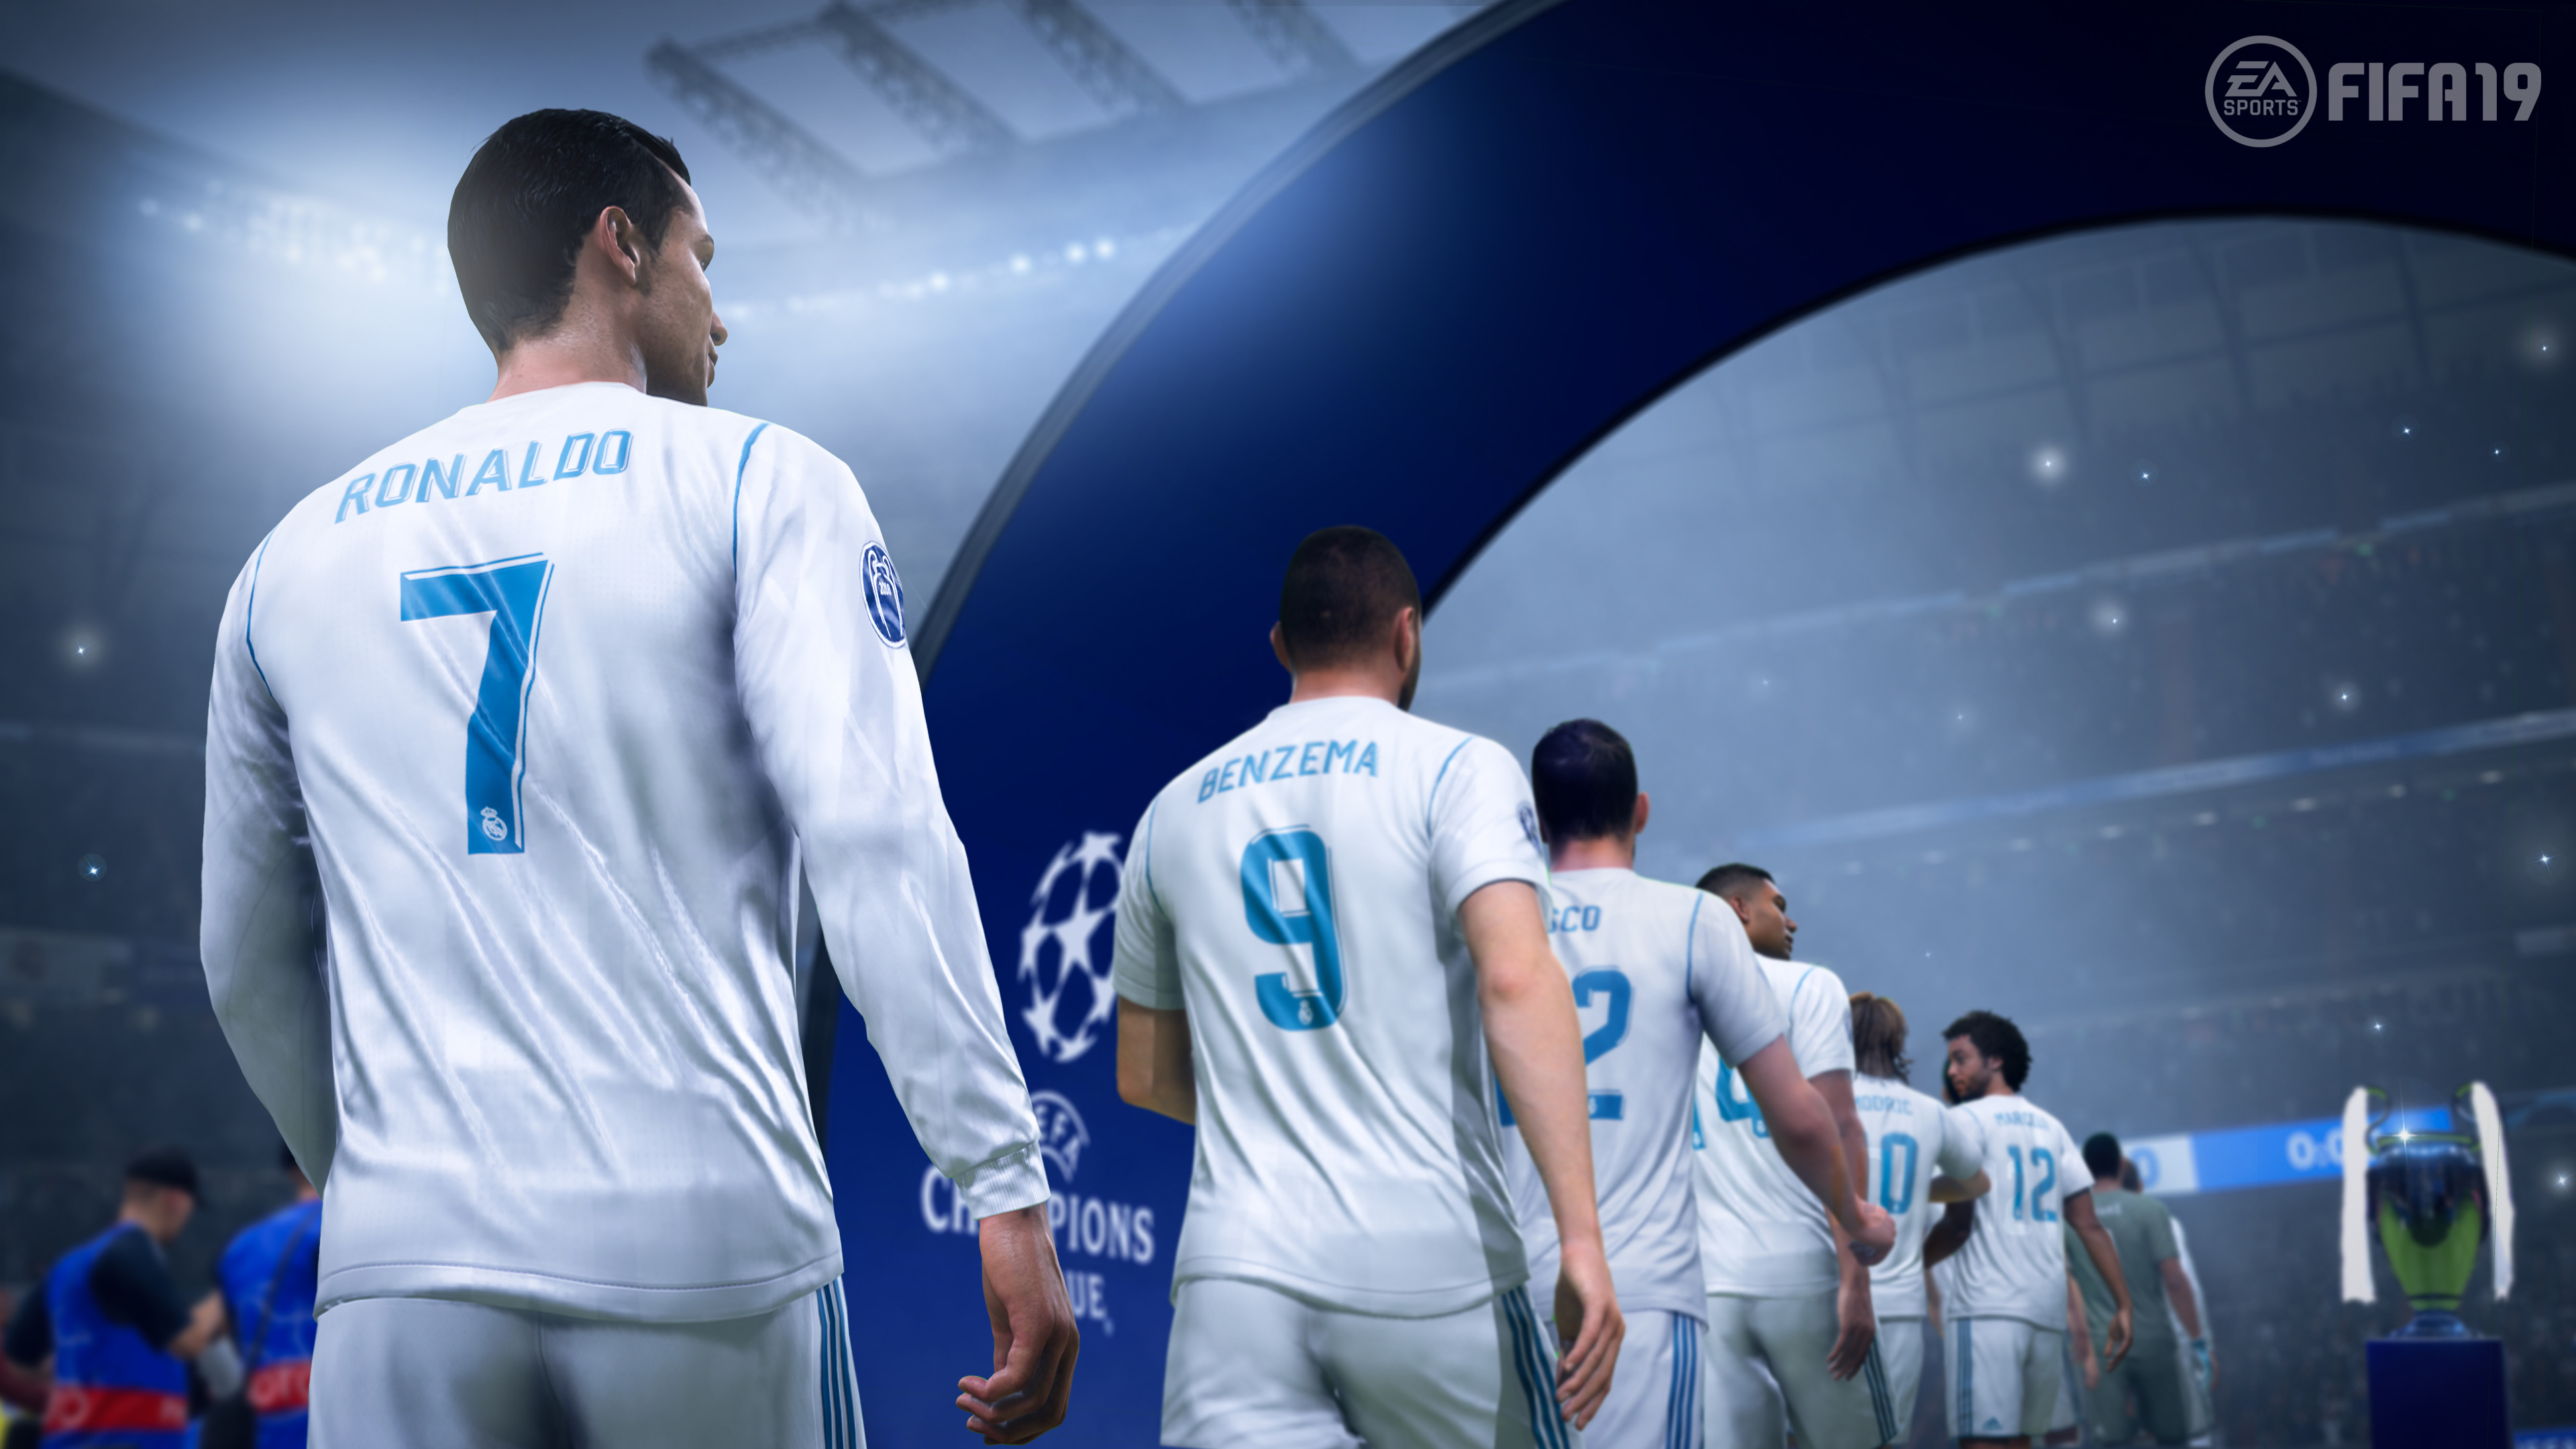 Fifa 19 Ronaldo, HD Games, 4k Wallpapers, Images